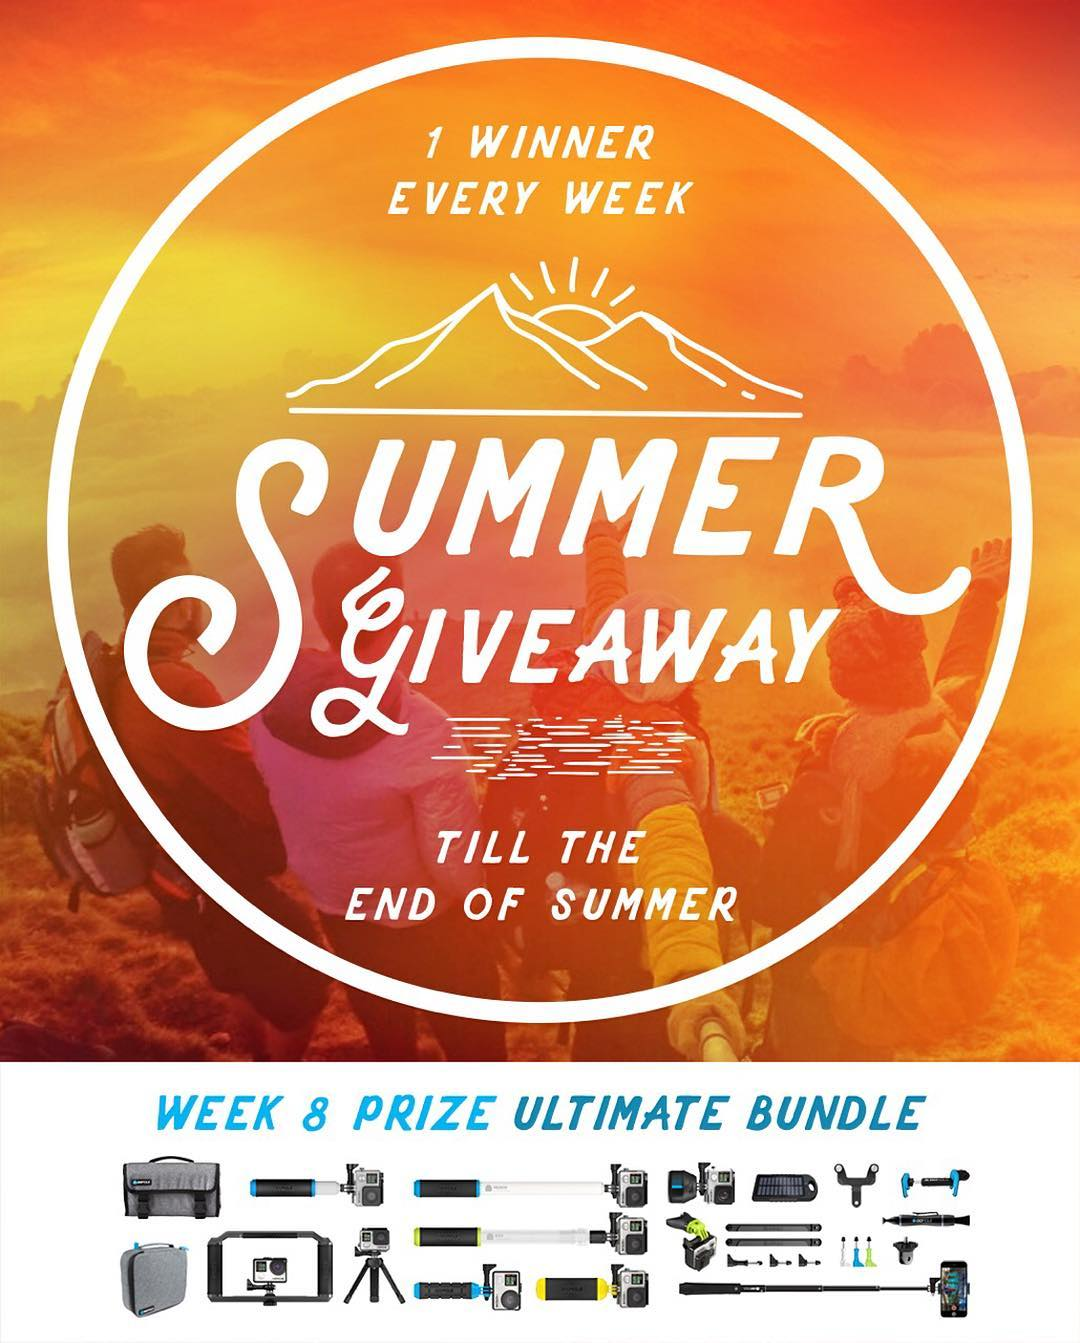 Congrats to week 7 winner, John Caldwell from Richmond, KY, USA. Final winner announced September 22 - Ultimate Bundle. No purchase necessary, enter once or enter every day to increase your changes of winning. Enter now by clicking the link in our bio....